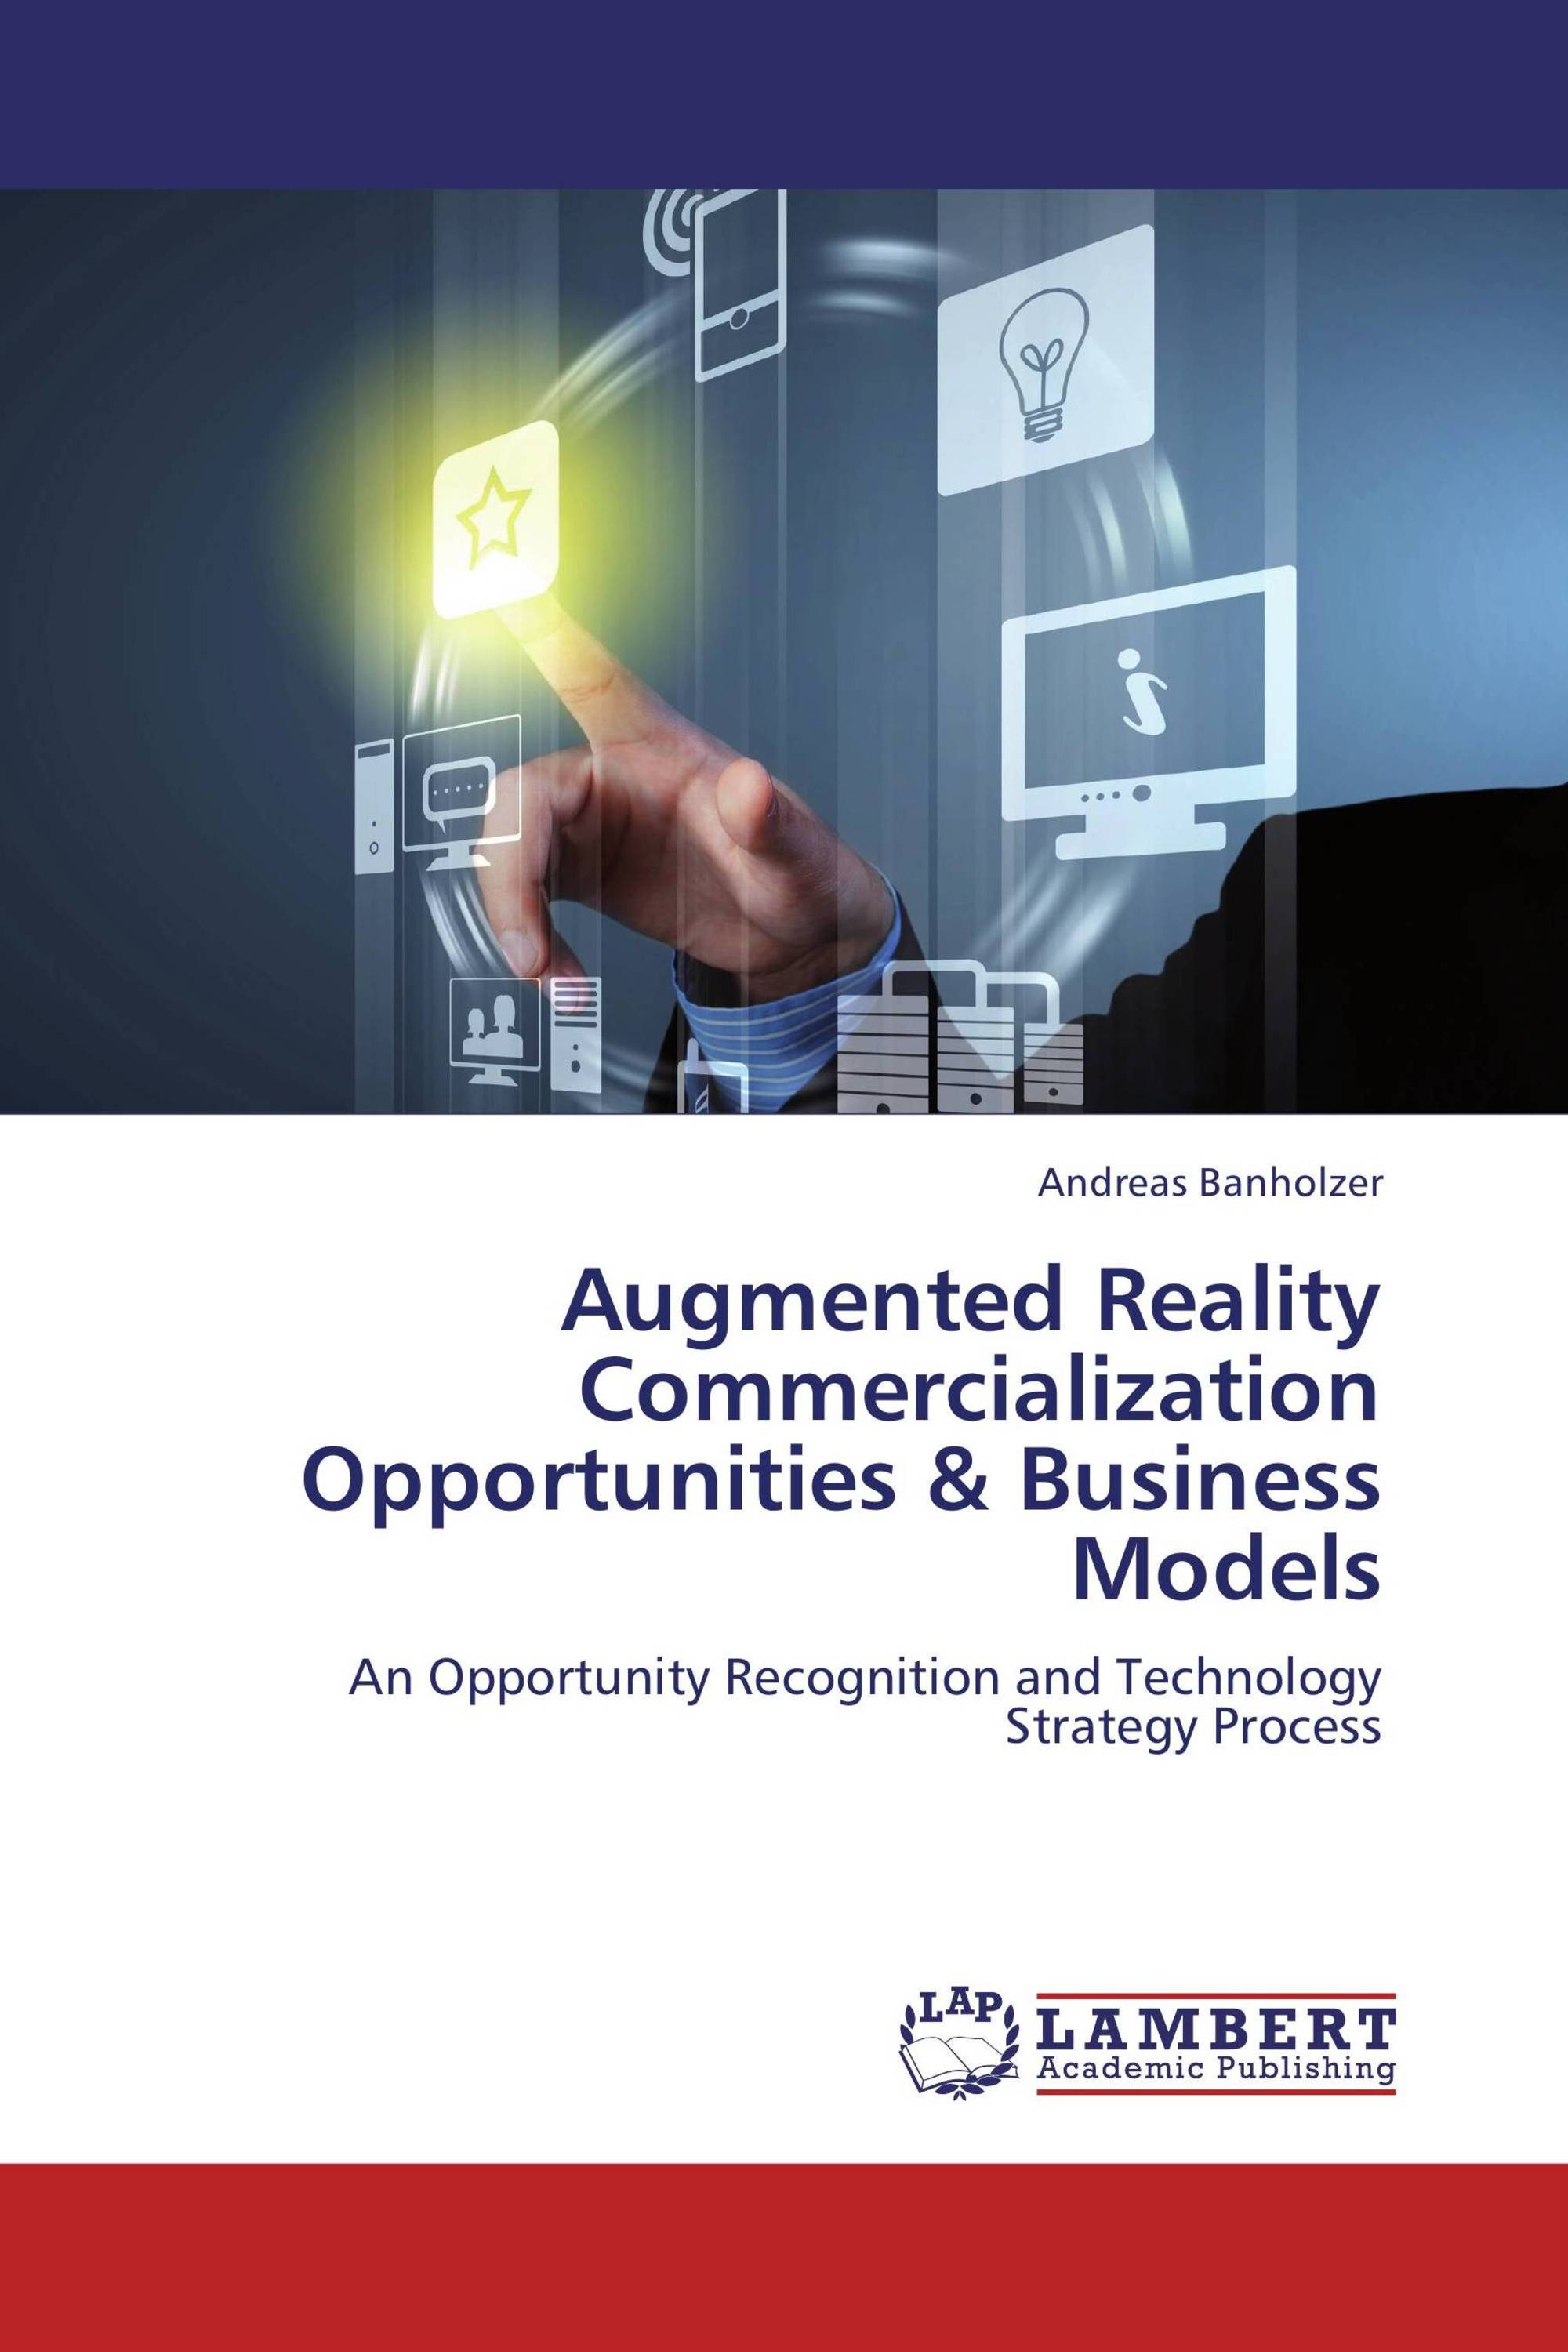 Augmented Reality Commercialization Opportunities & Business Models